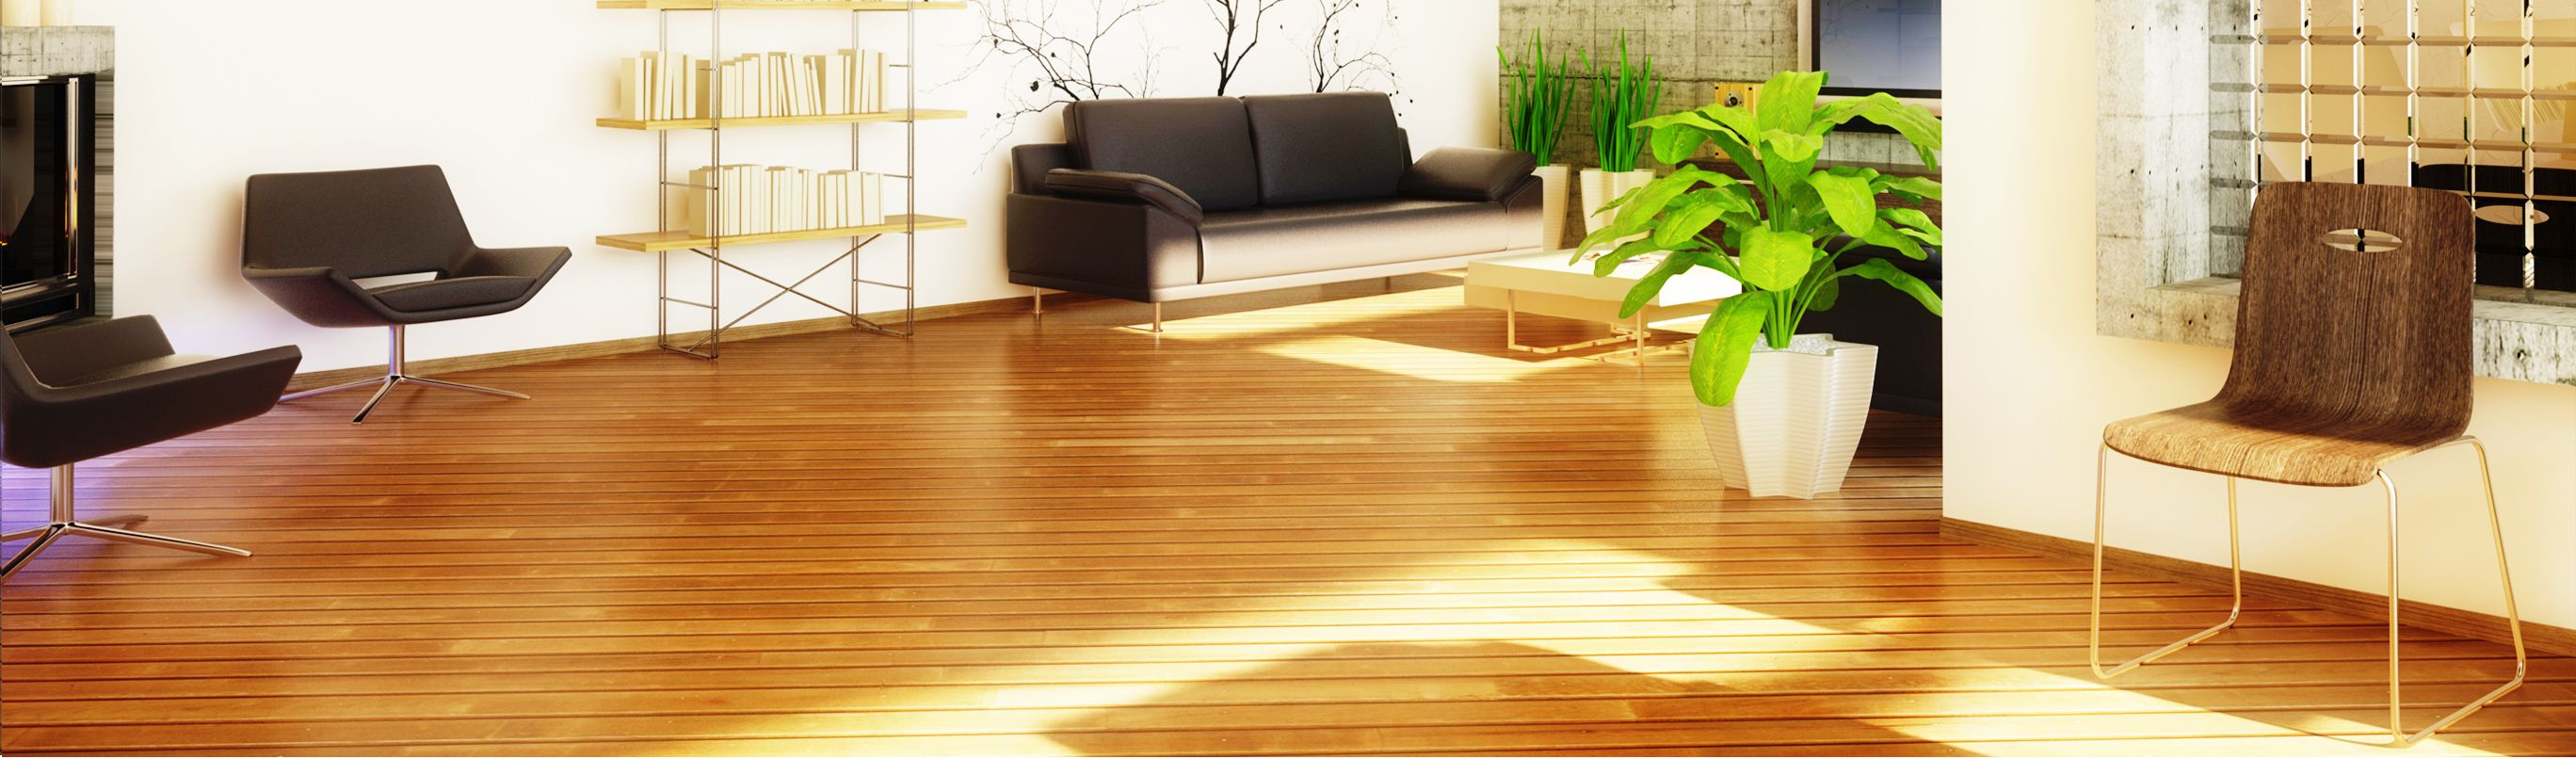 Newage timber floors on timber flooring and perth